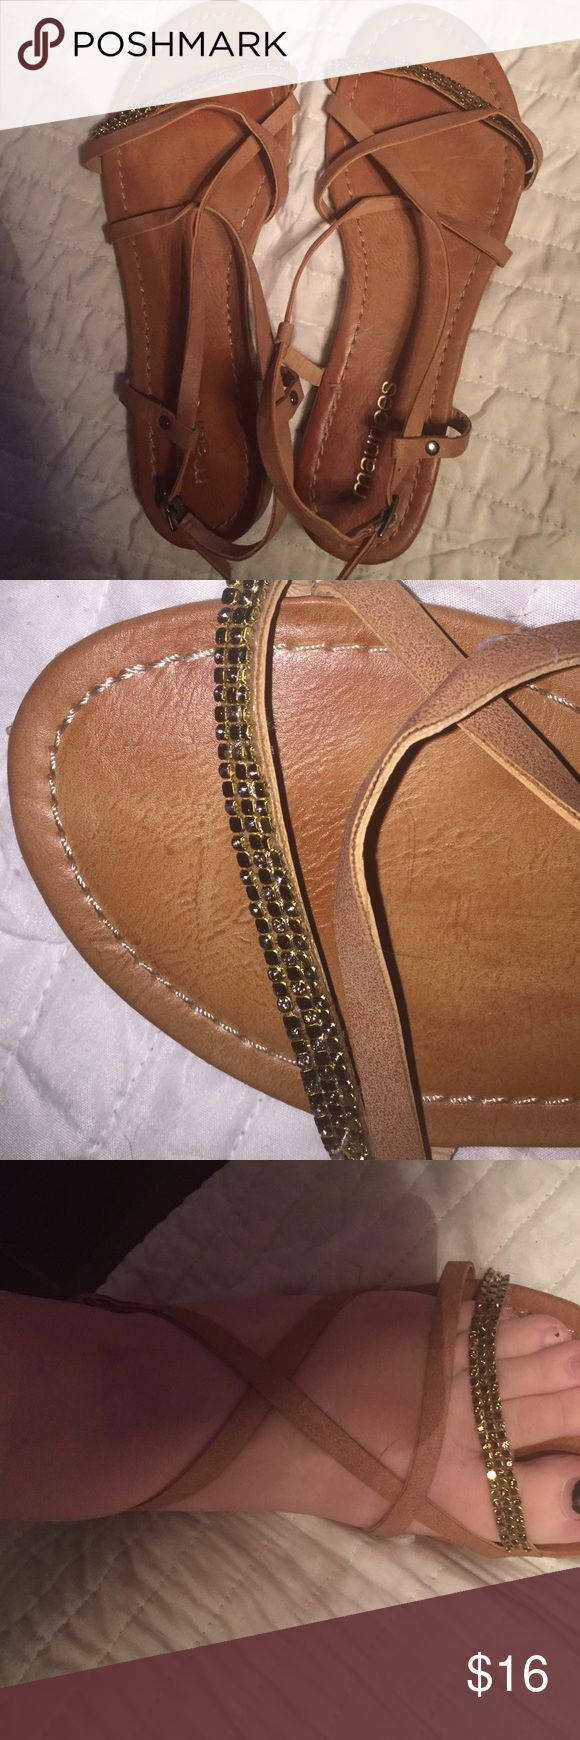 gladiators worn one time for prom, perfect condition, adjustable side Maurices Shoes Sandals